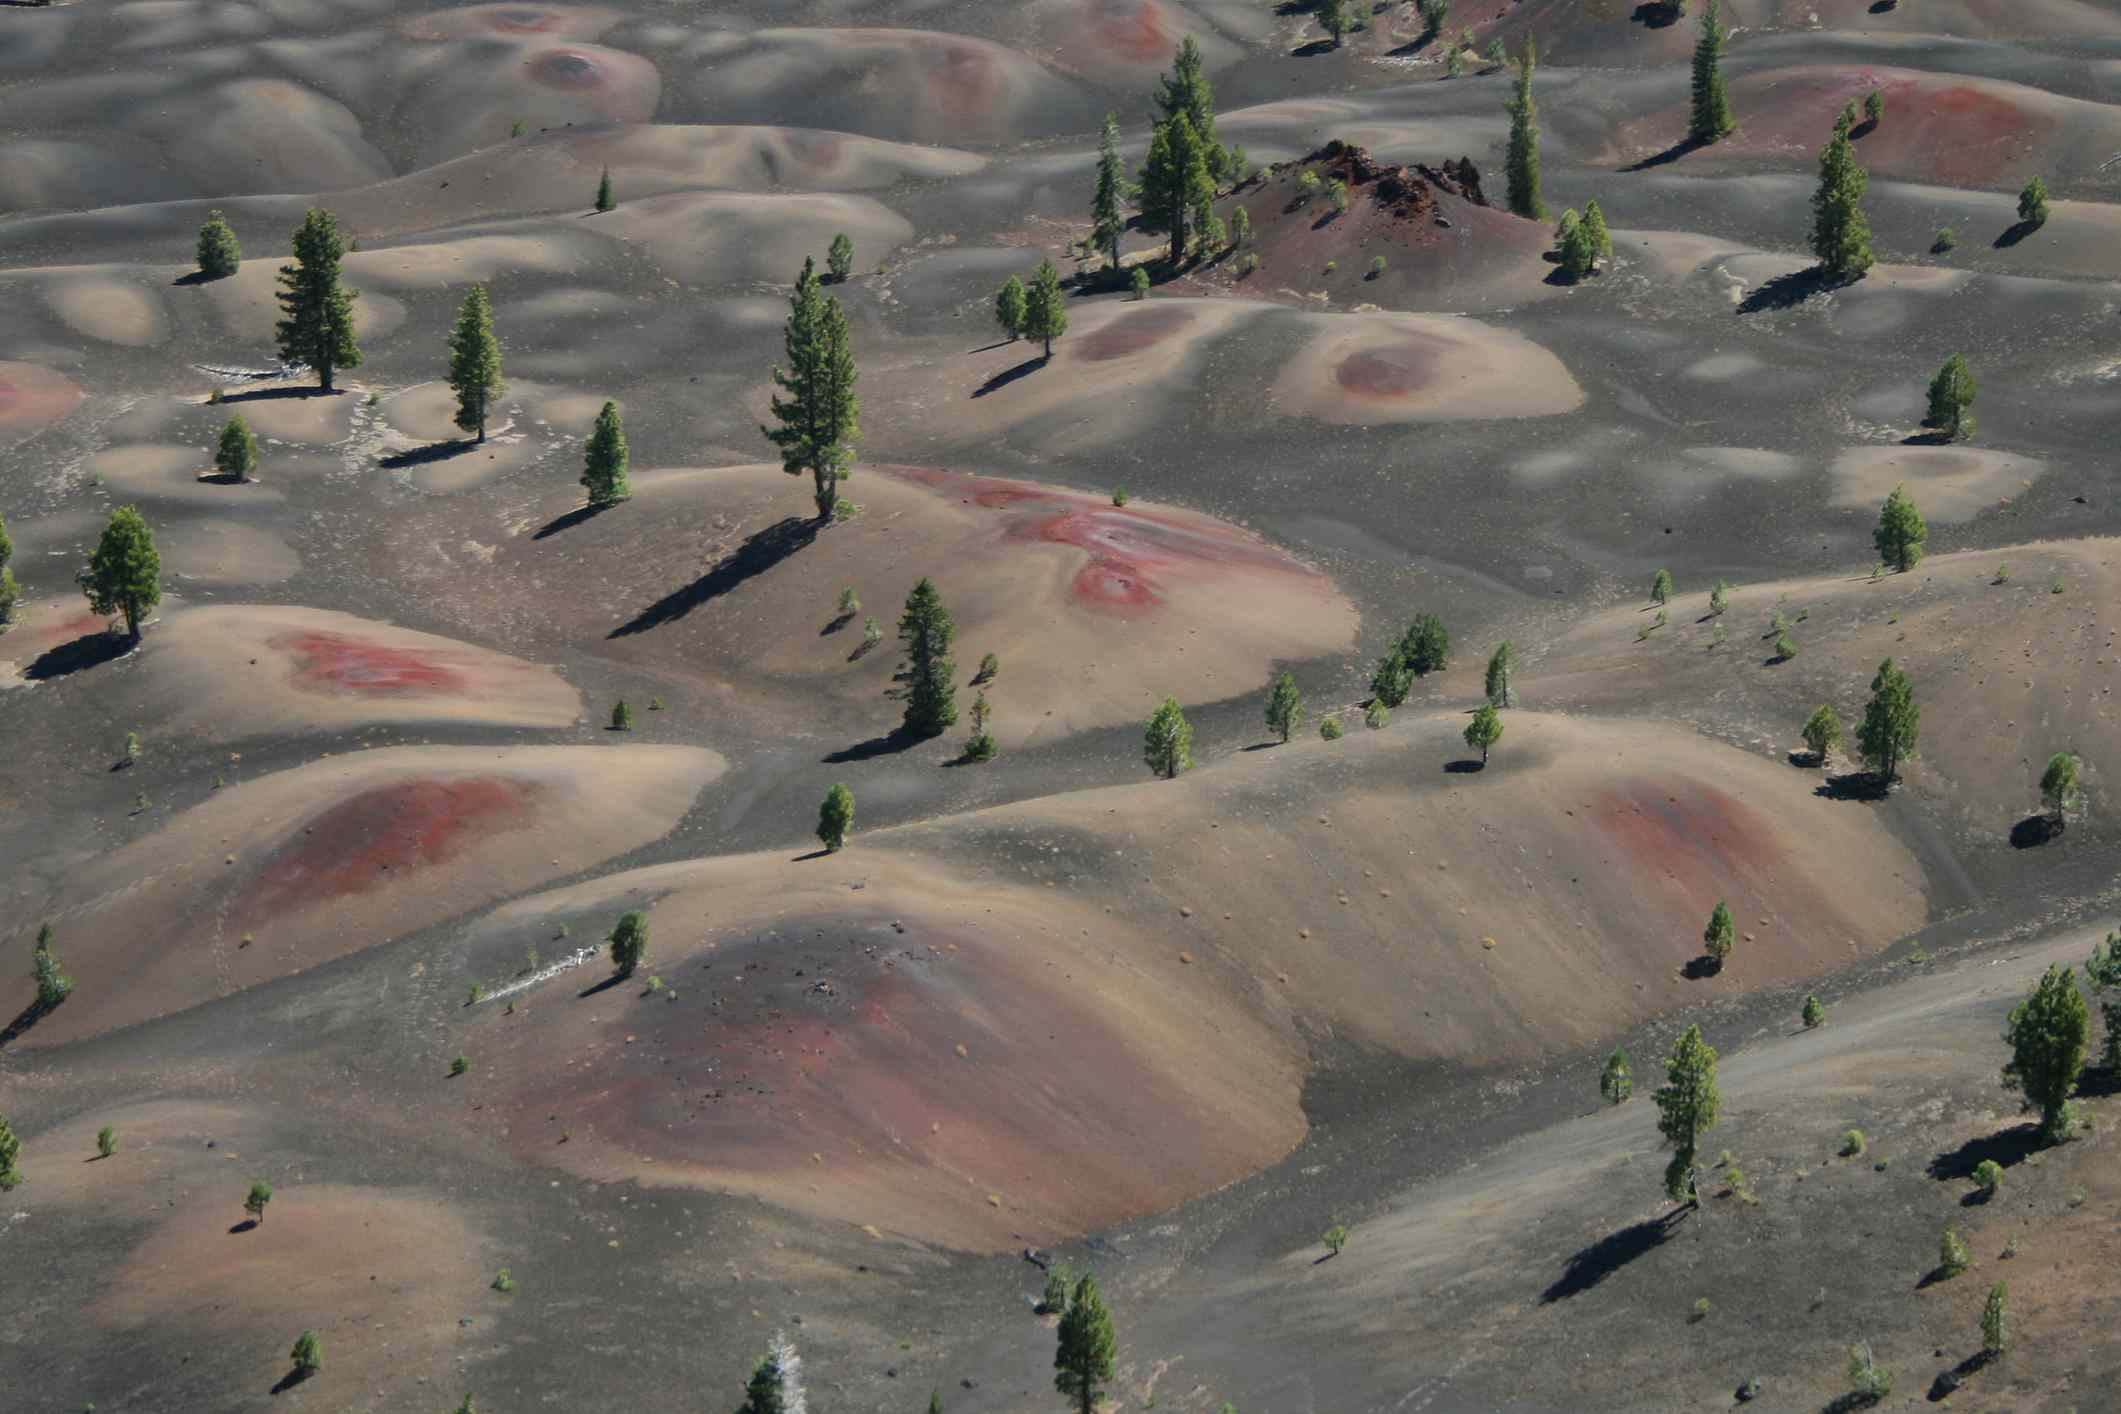 Dunes of gray, red, and tan sand dotted with pine trees